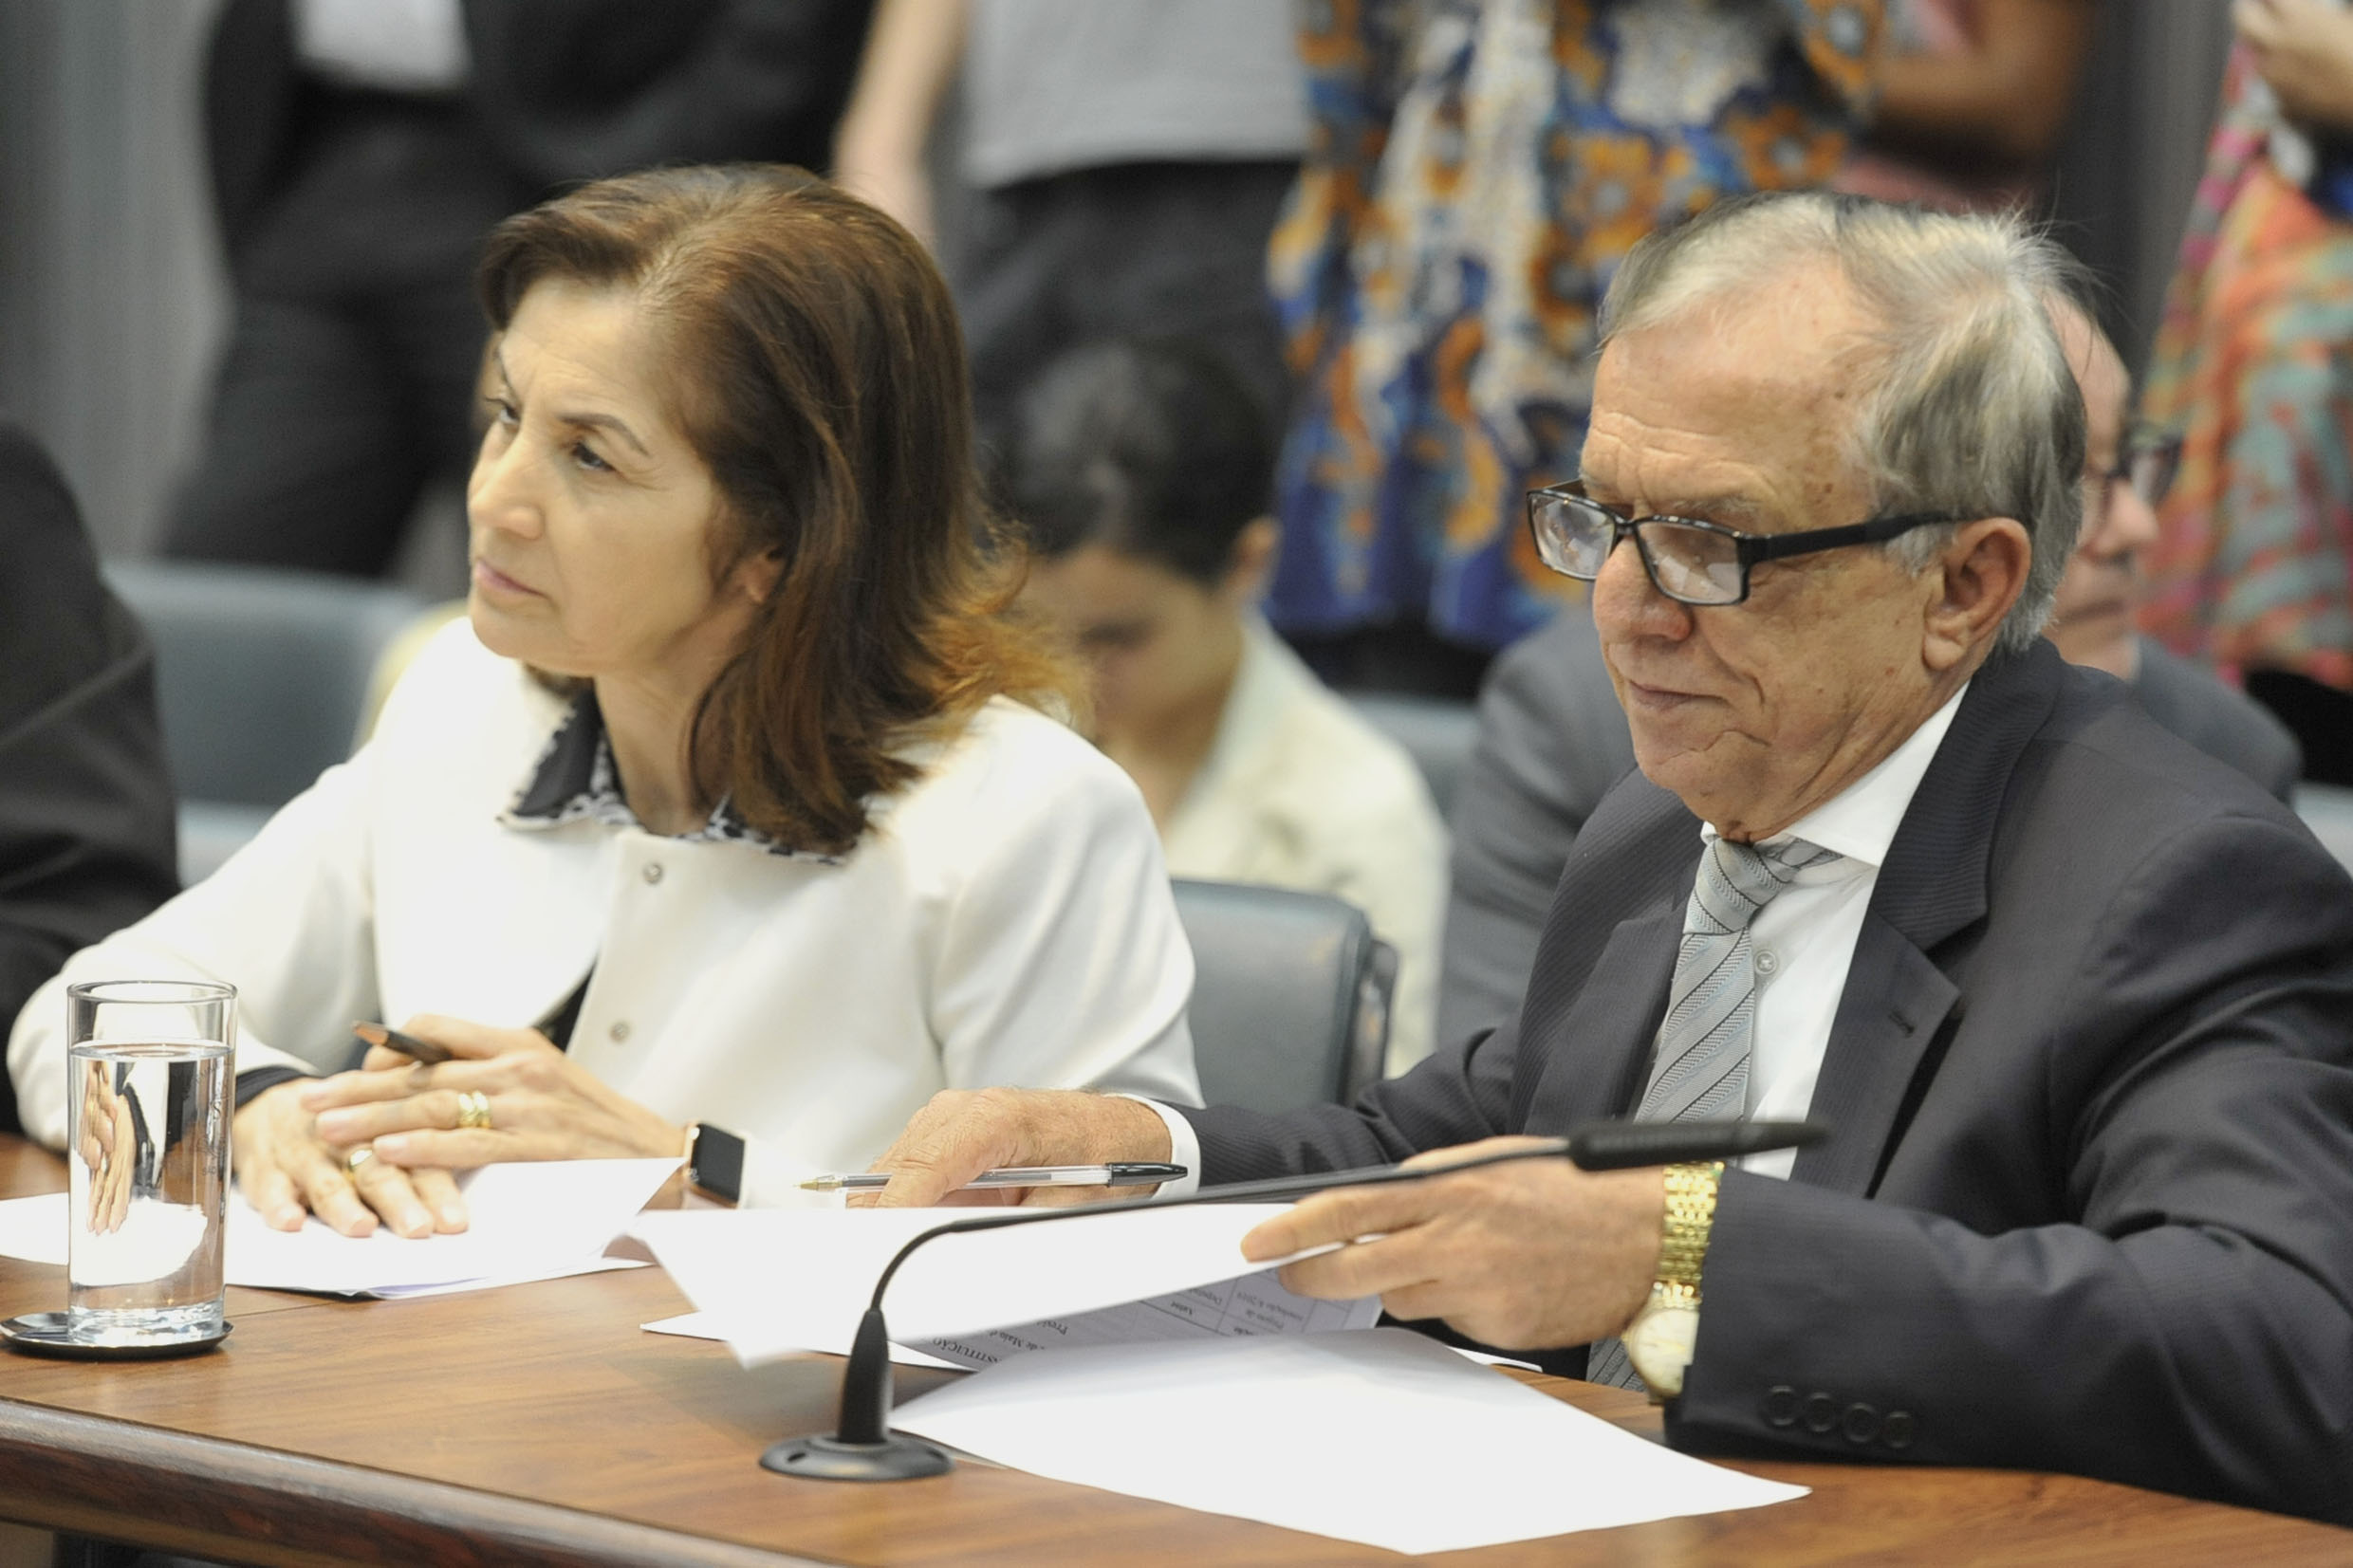 Parlamentares na comissão<a style='float:right' href='https://www3.al.sp.gov.br/repositorio/noticia/N-05-2019/fg234496.jpg' target=_blank><img src='/_img/material-file-download-white.png' width='14px' alt='Clique para baixar a imagem'></a>